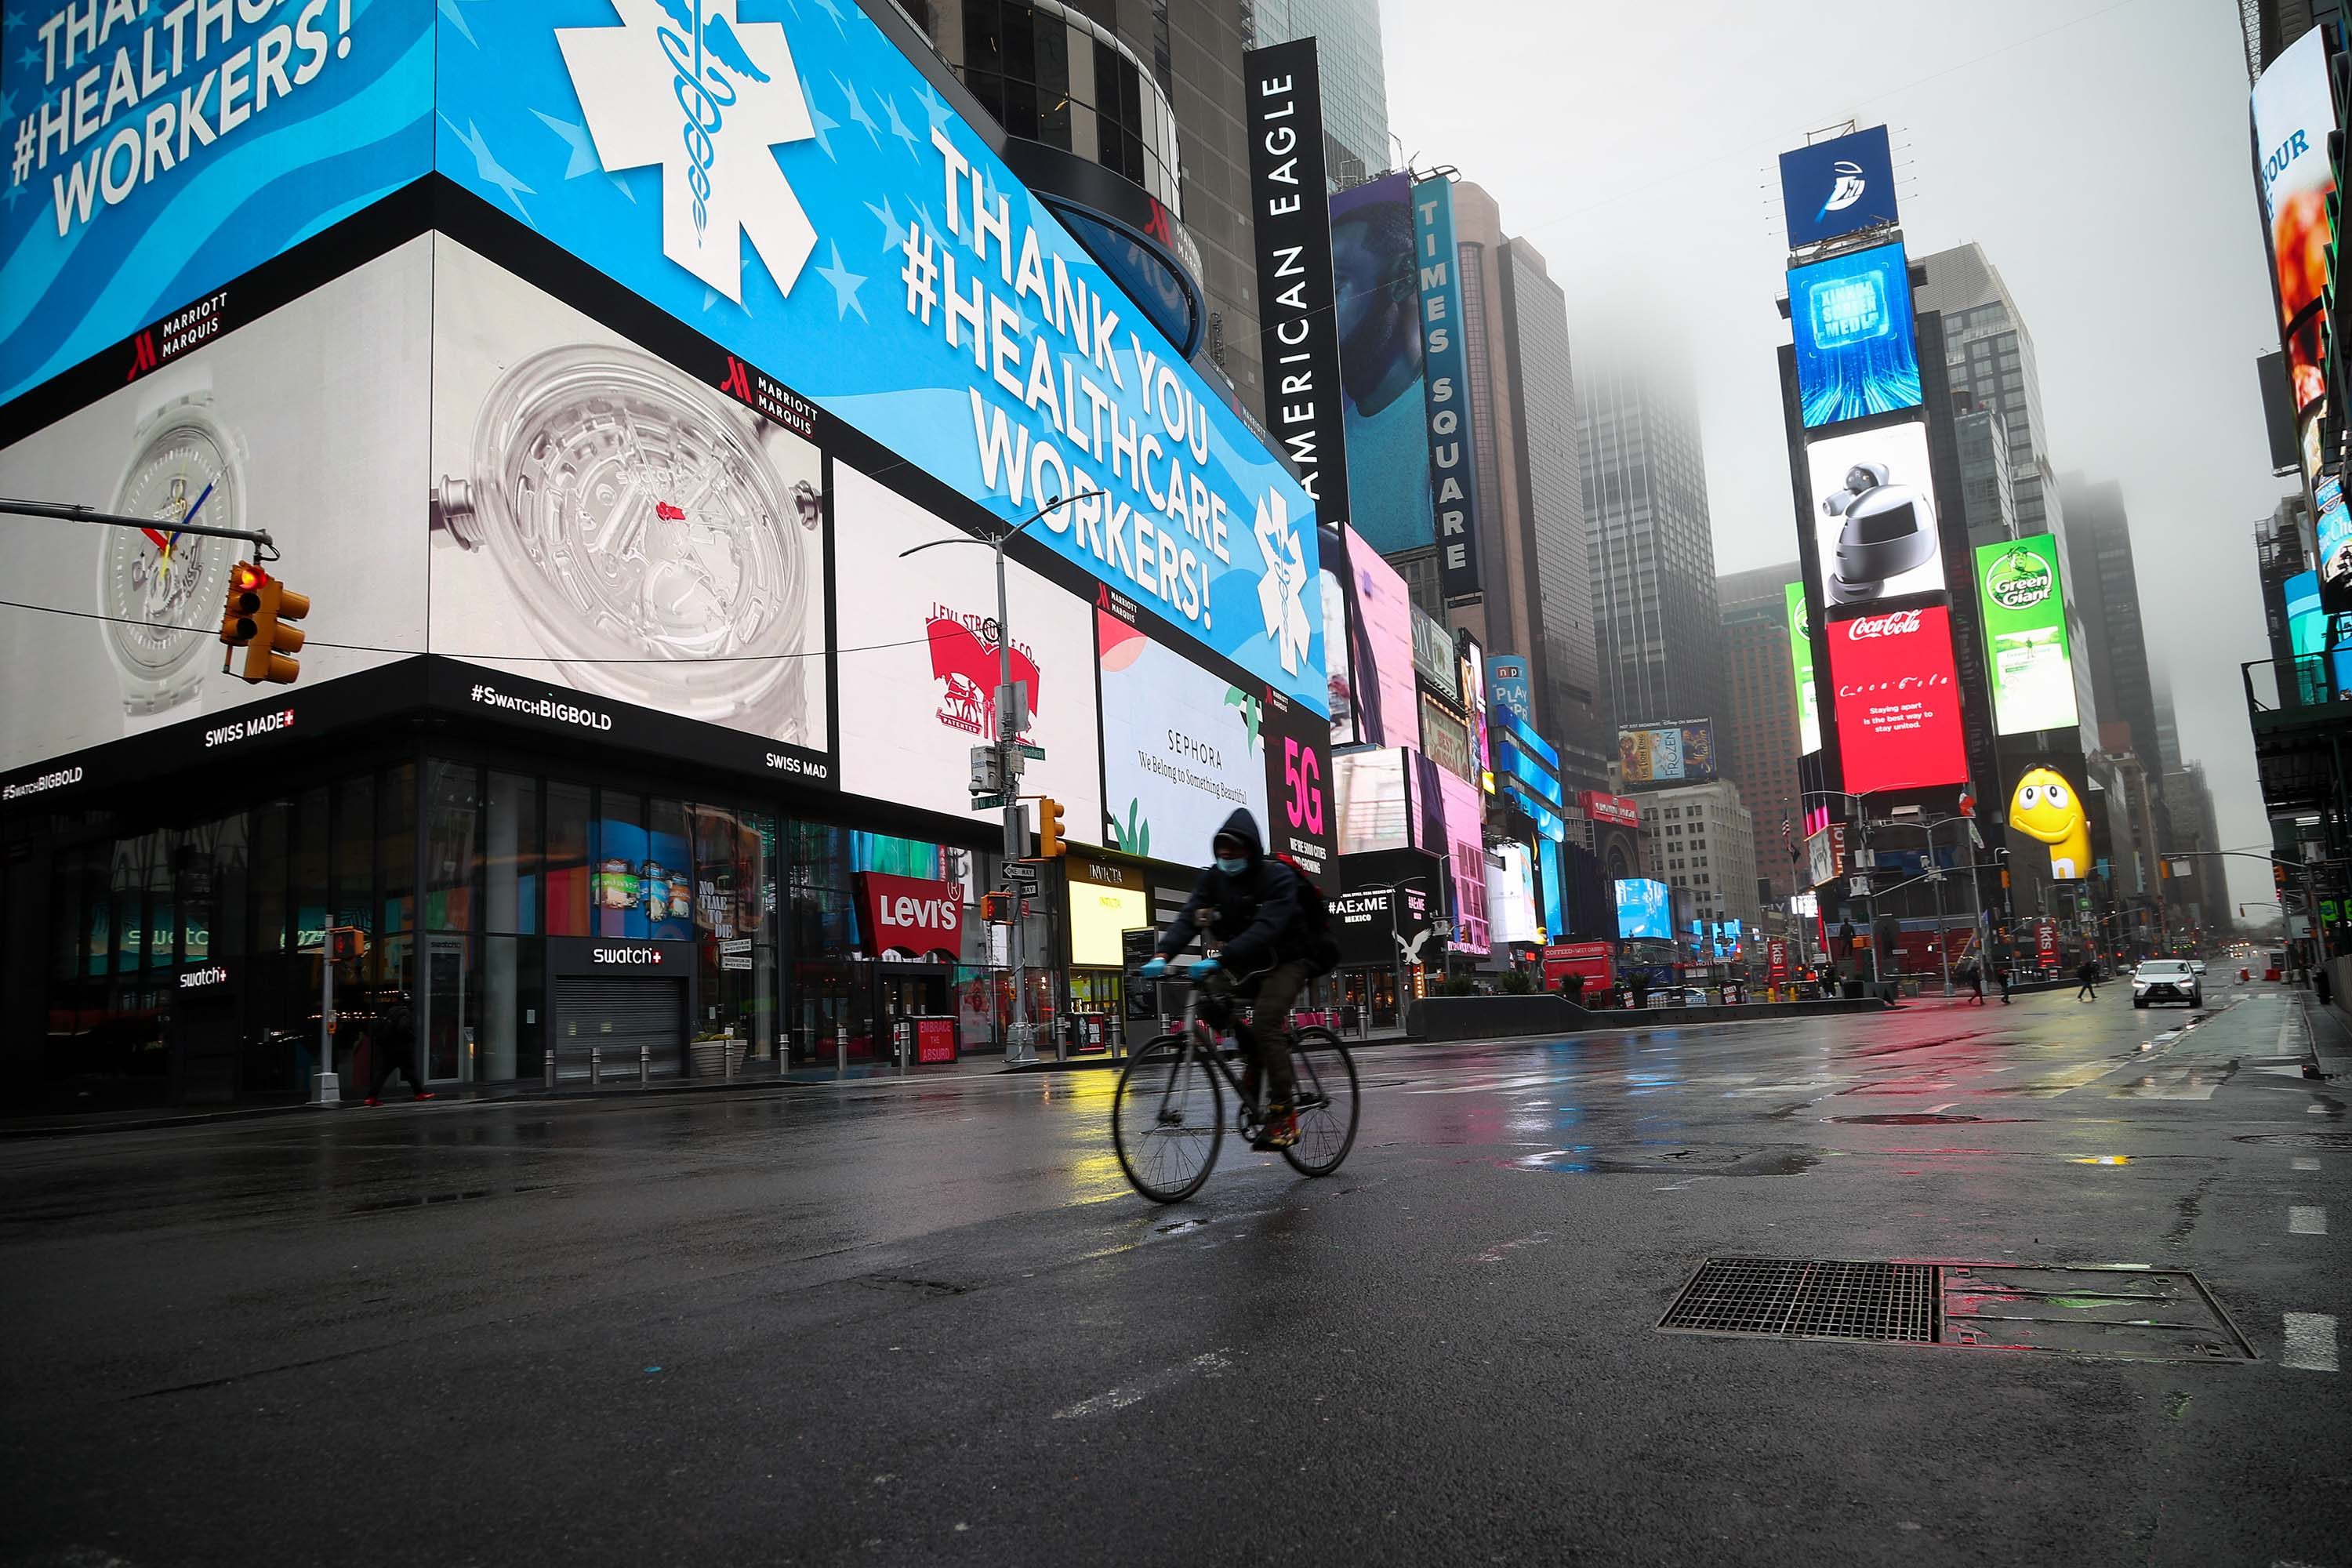 Time Square is pictured in New York on March 29.